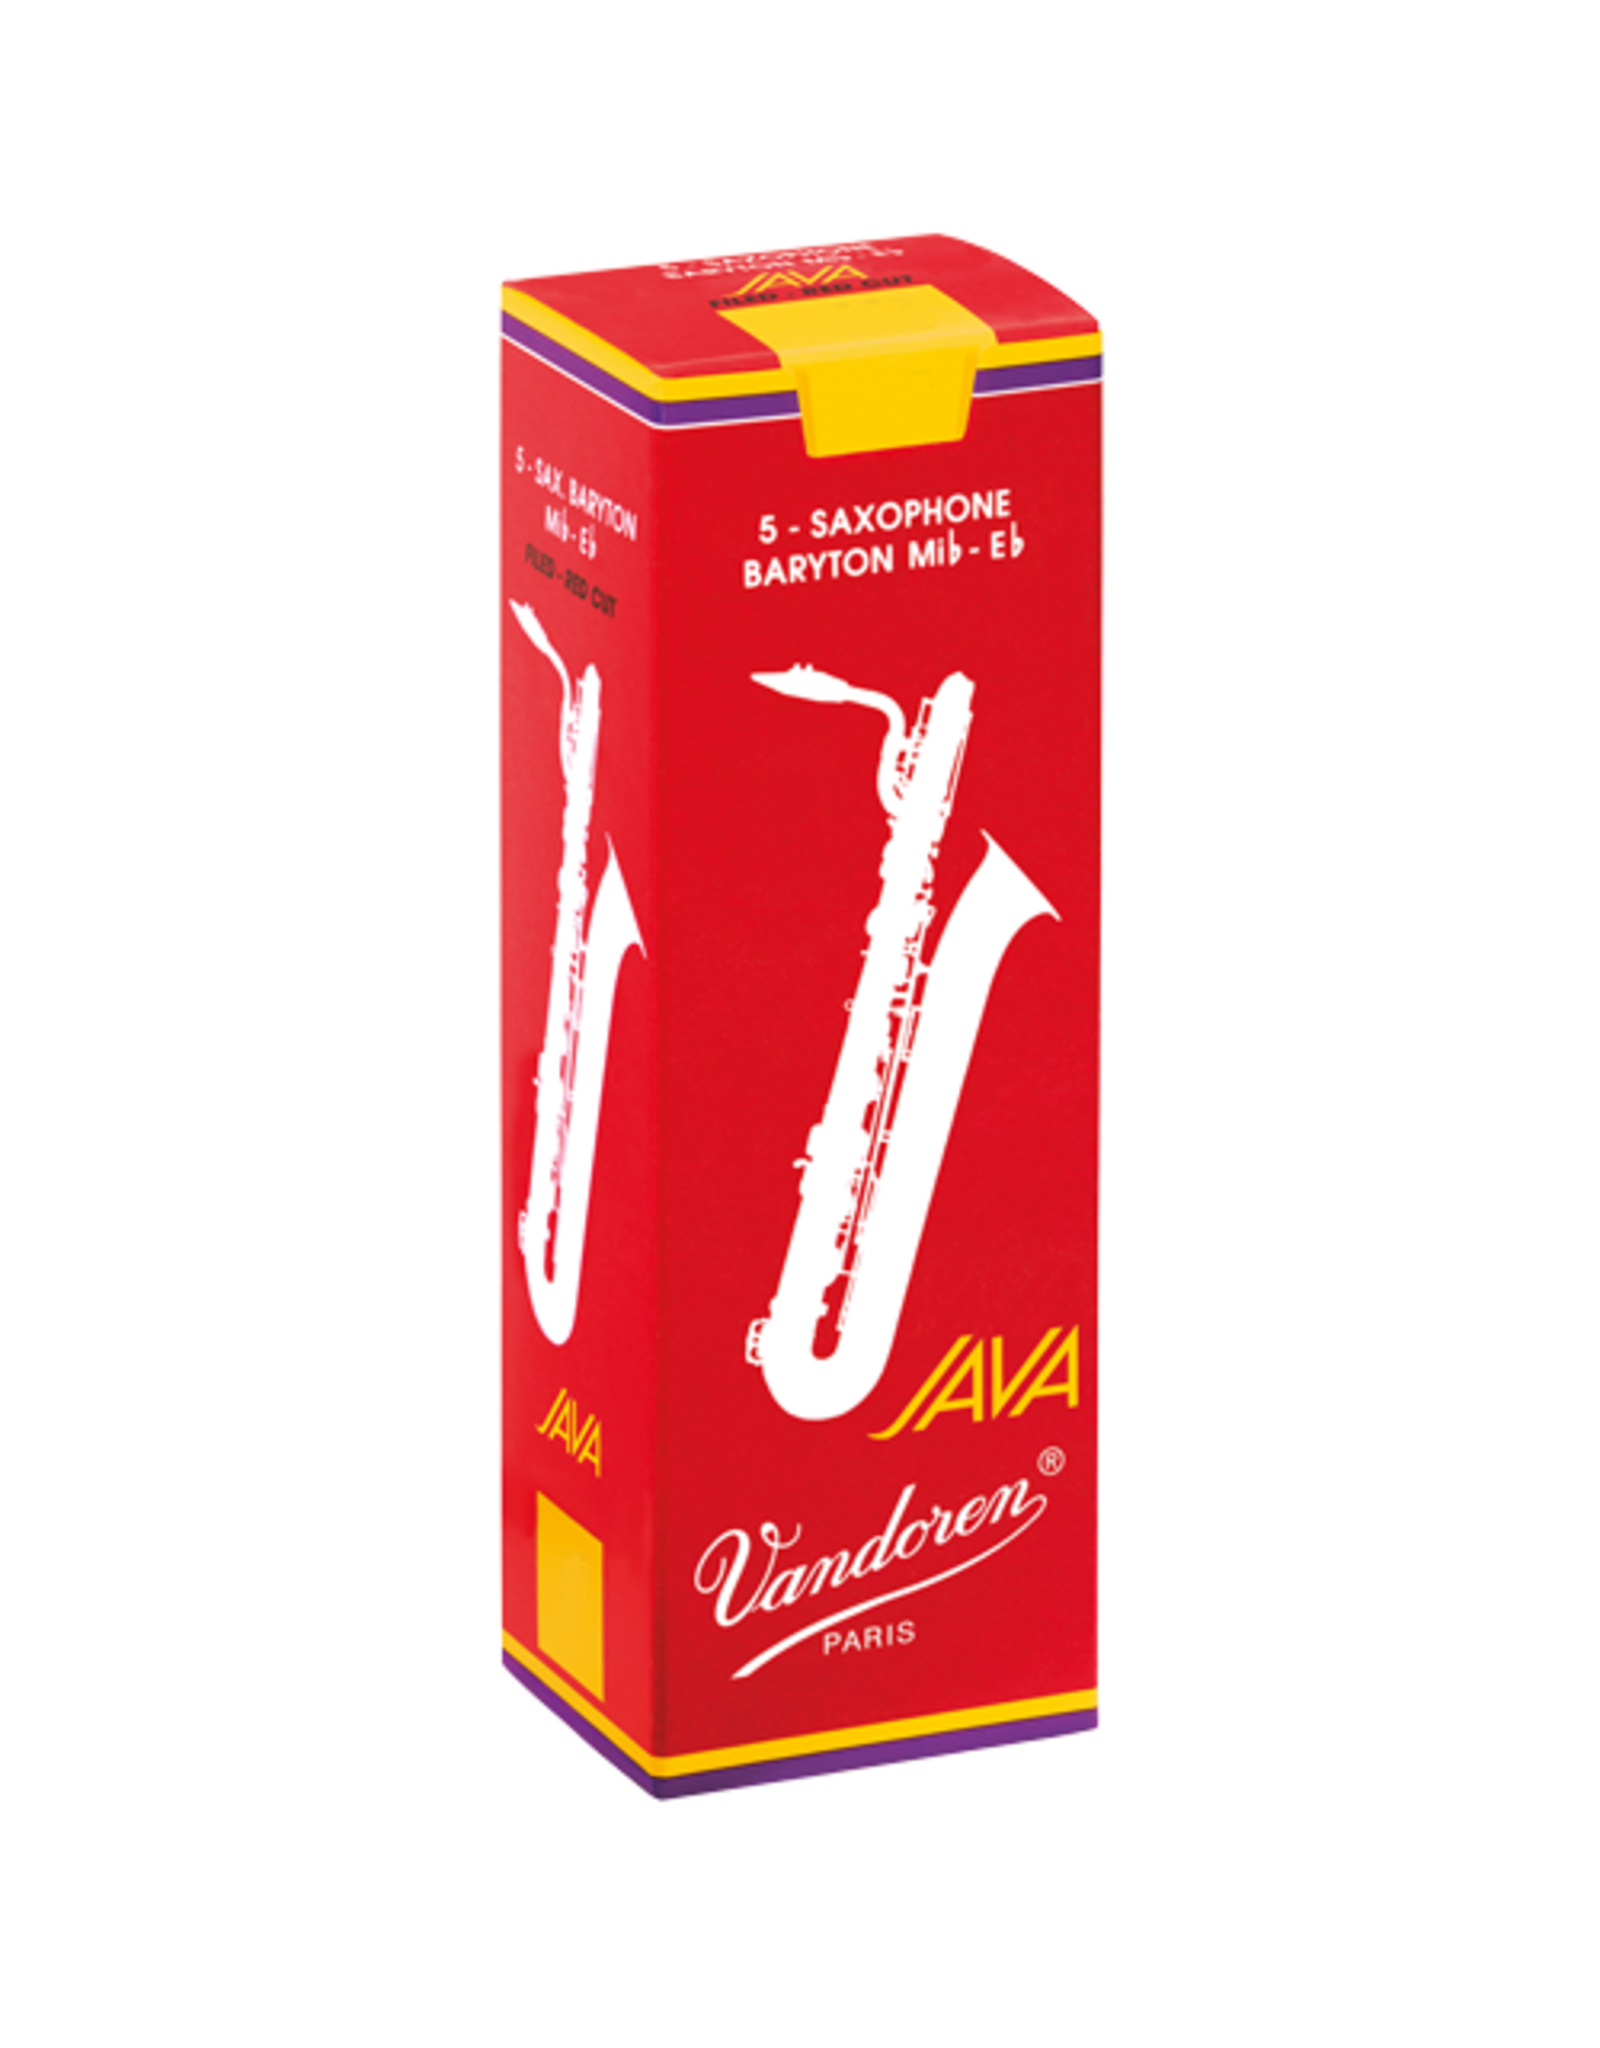 Van Doren Vandoren Java Filed- Red cut Bariton Sax rietjes